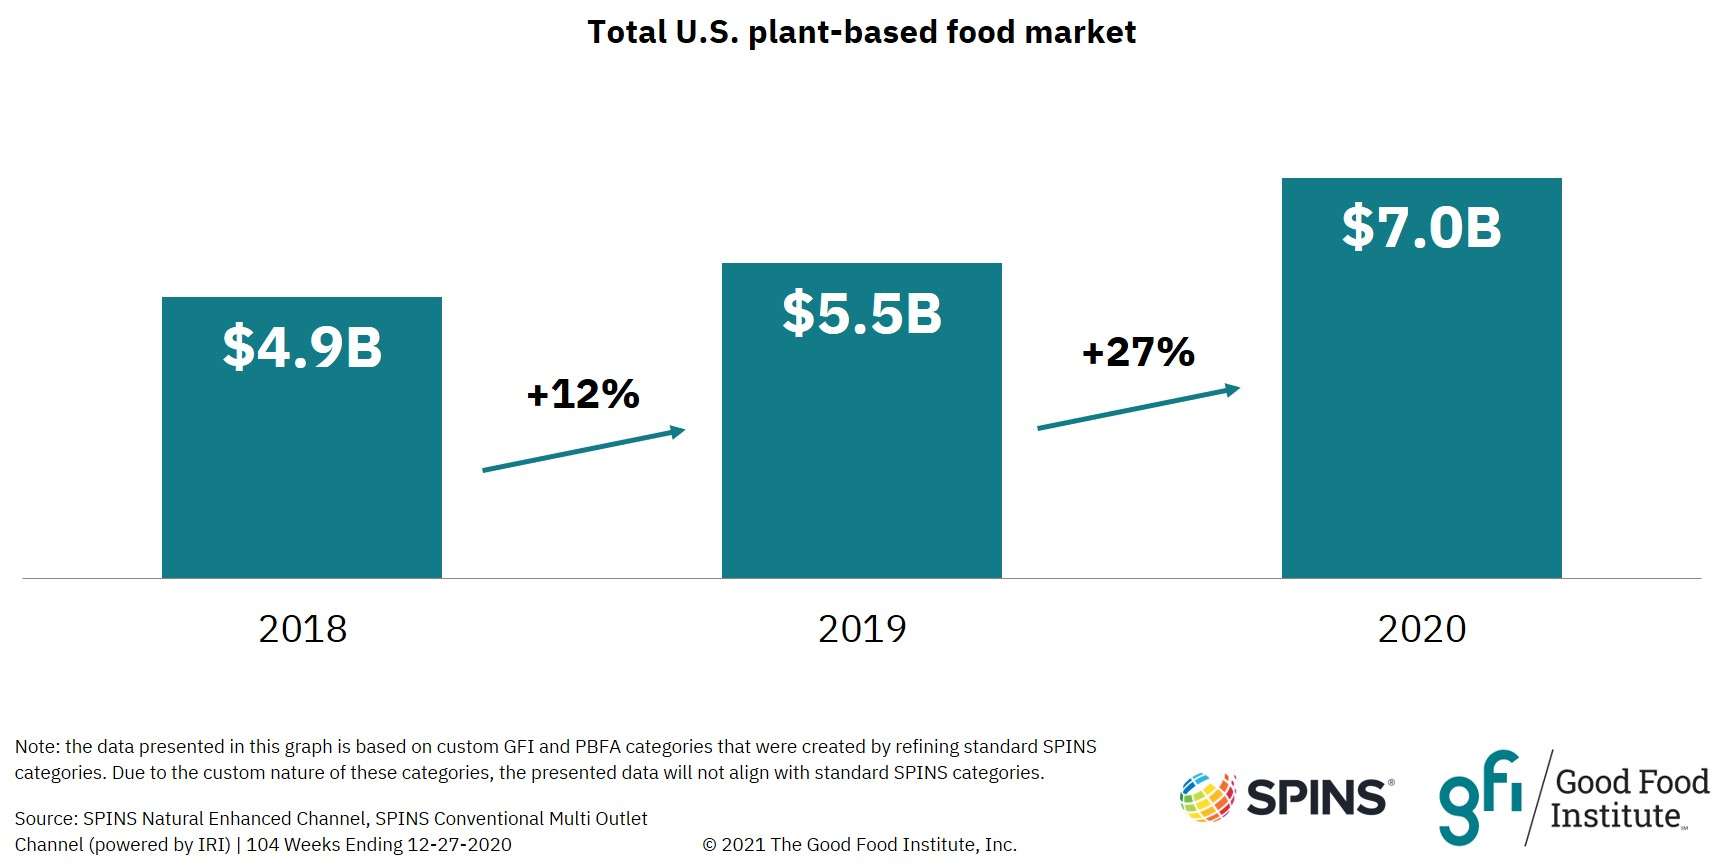 Bar graph showing plant-based market dollar sales in 2018, 2019, and 2020.